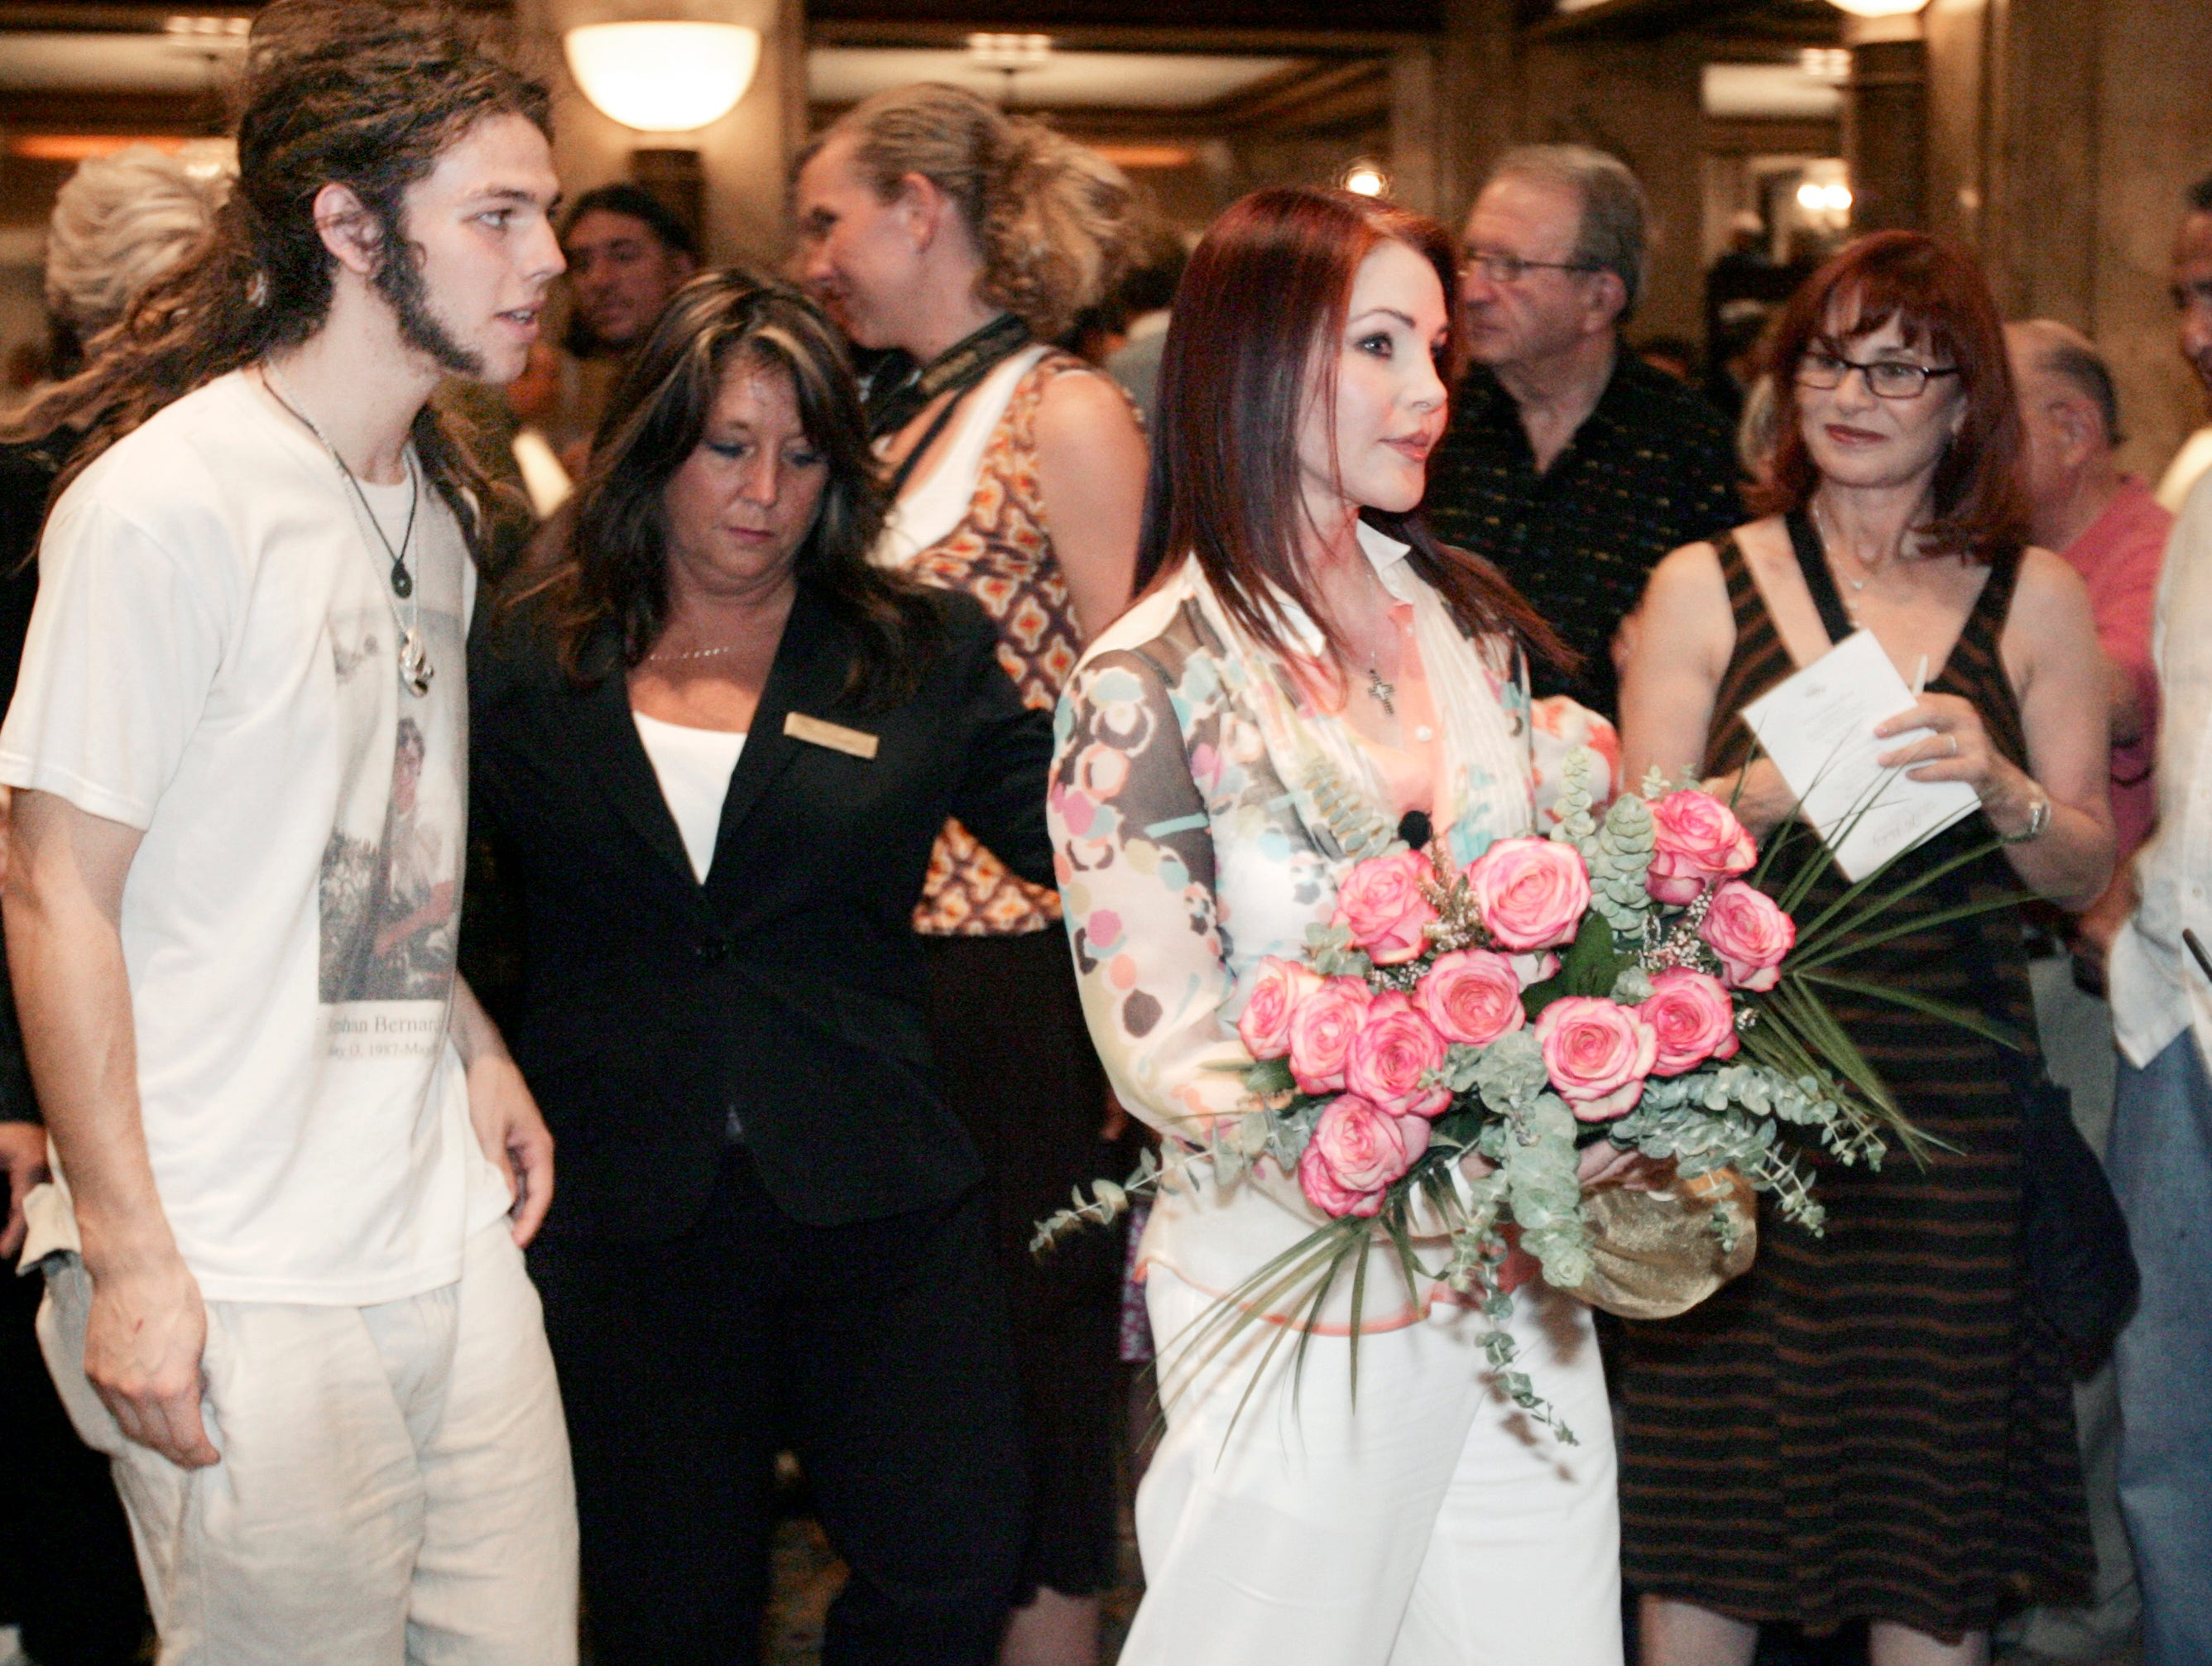 Priscilla Presley, front right, leaves the Peabody Hotel on Aug. 16, 2007, with her son, Navarone Garibaldi, left, on the 30th anniversary of the death of Elvis Presley, her former husband. Priscilla Presley was at the hotel for a ceremony inducting Elvis Presley into the hotel's Duck Walk Hall of Fame.